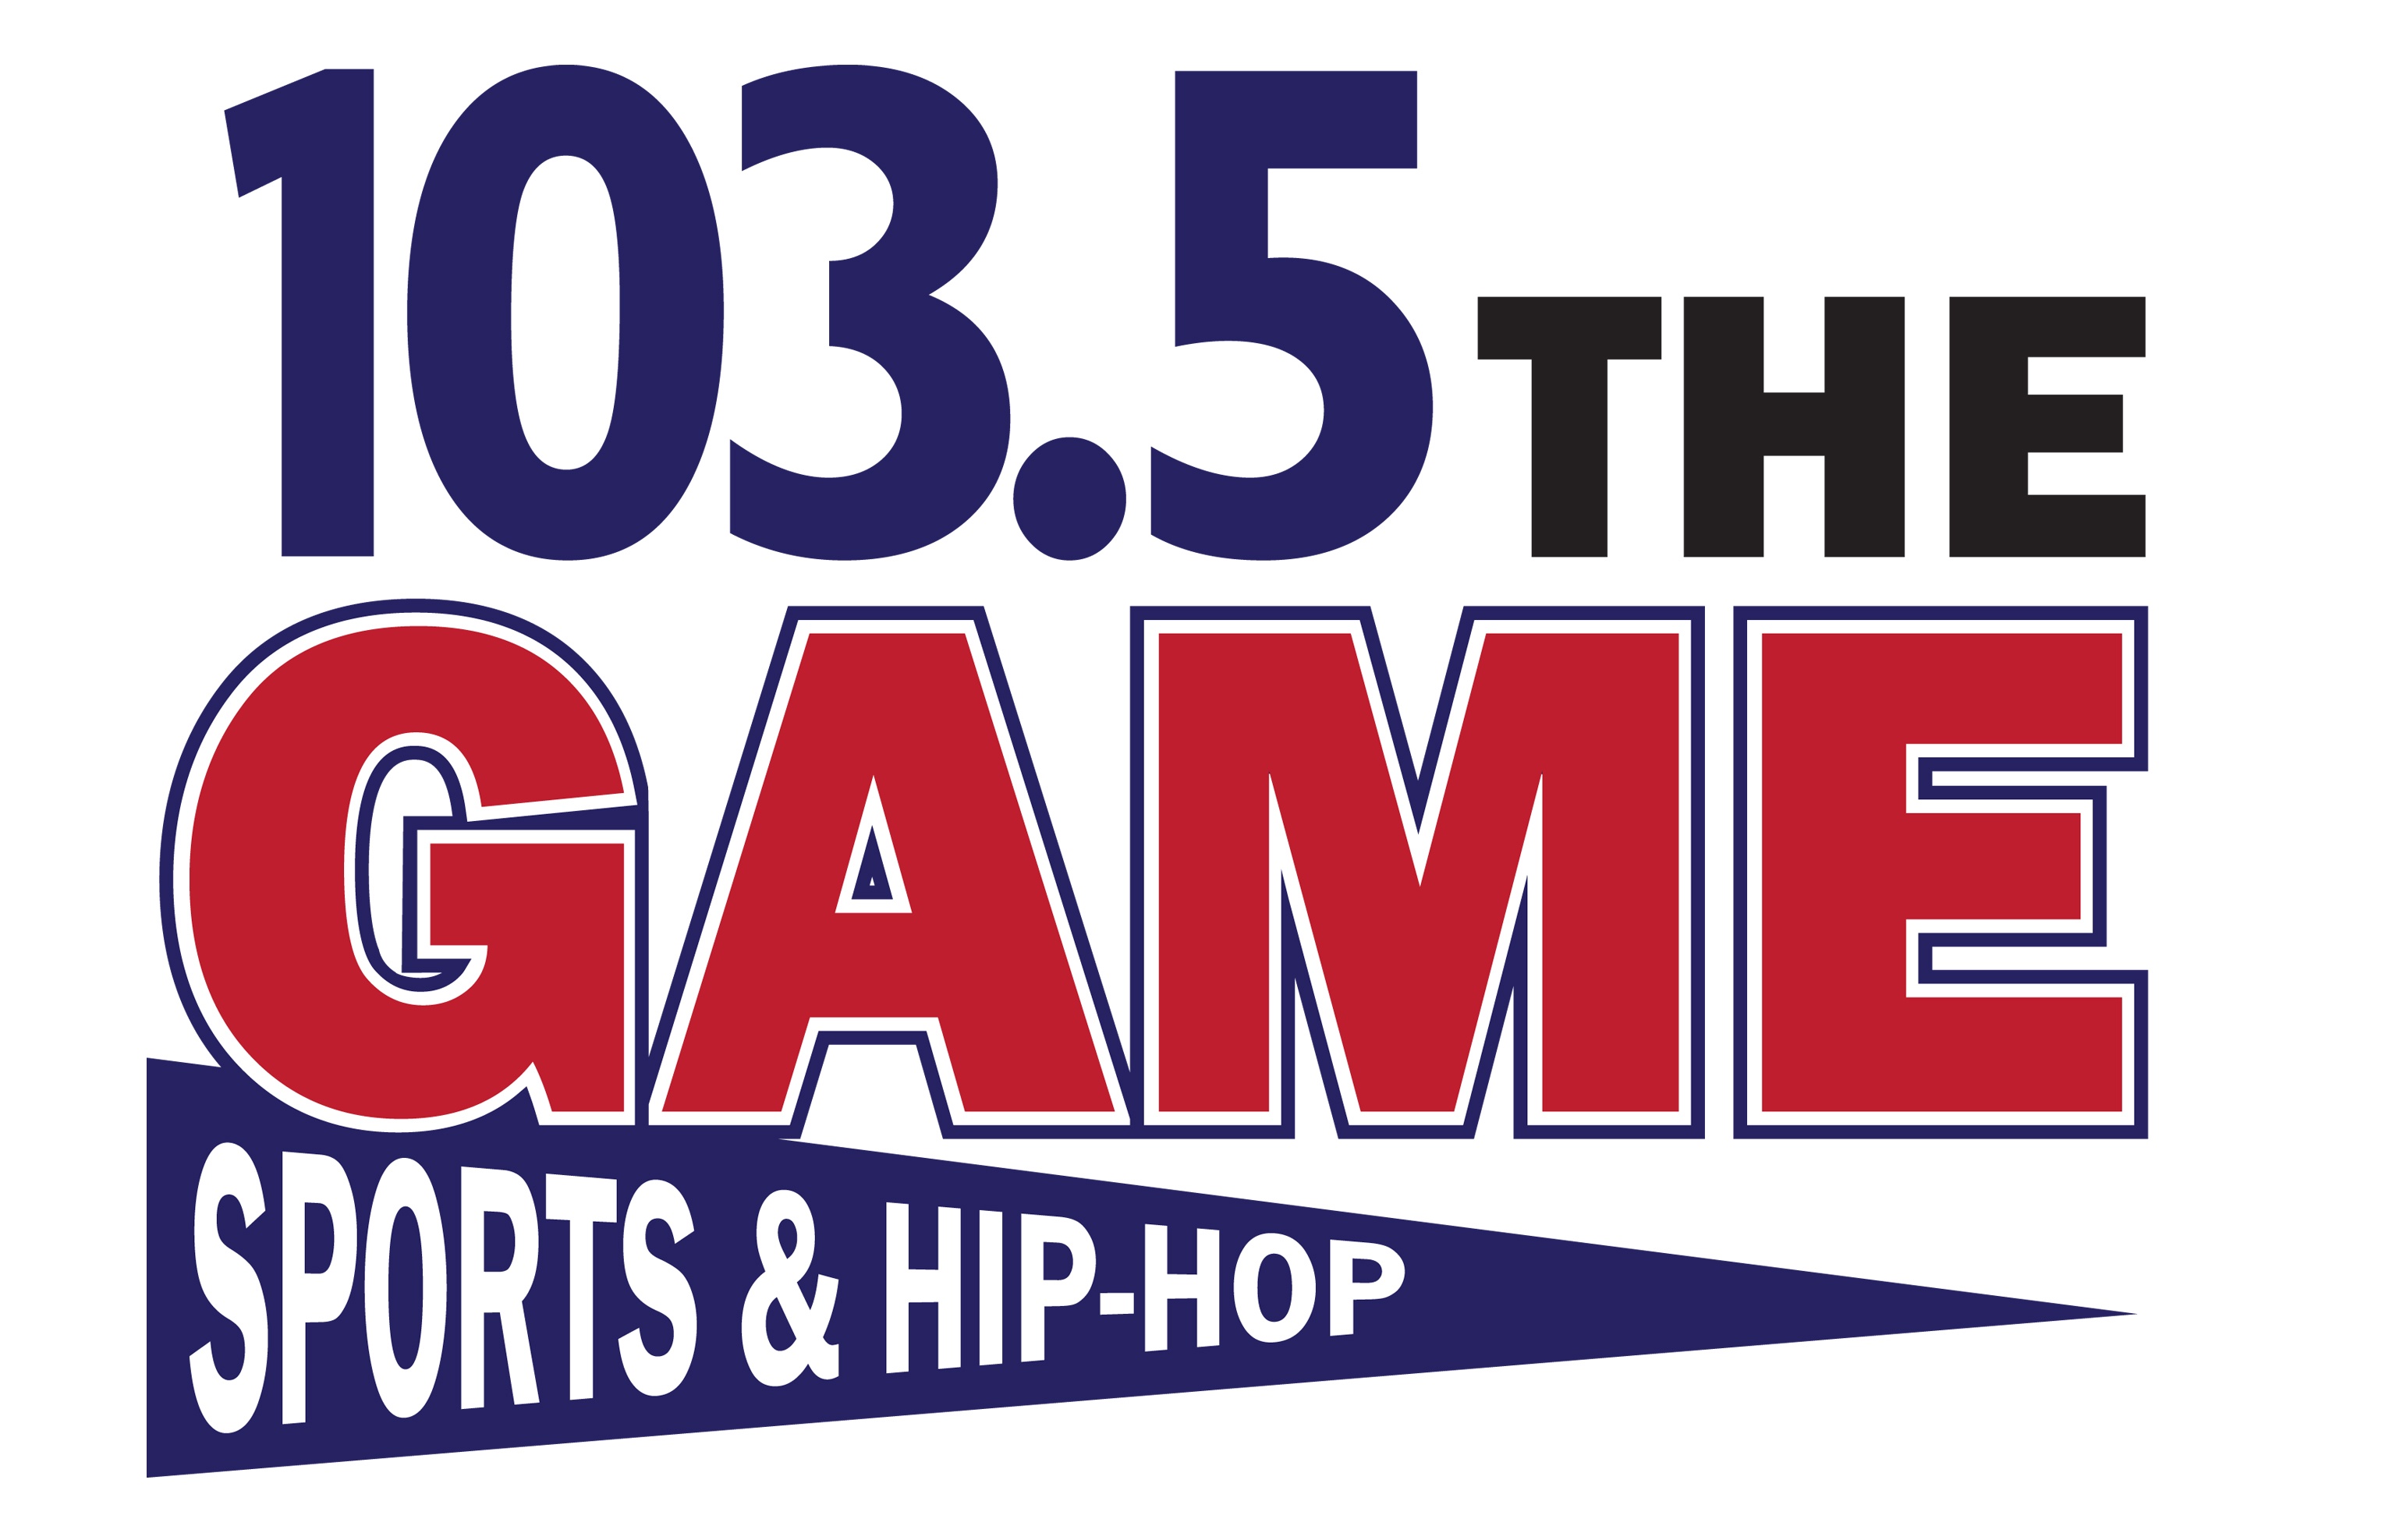 103.5 THE GAME